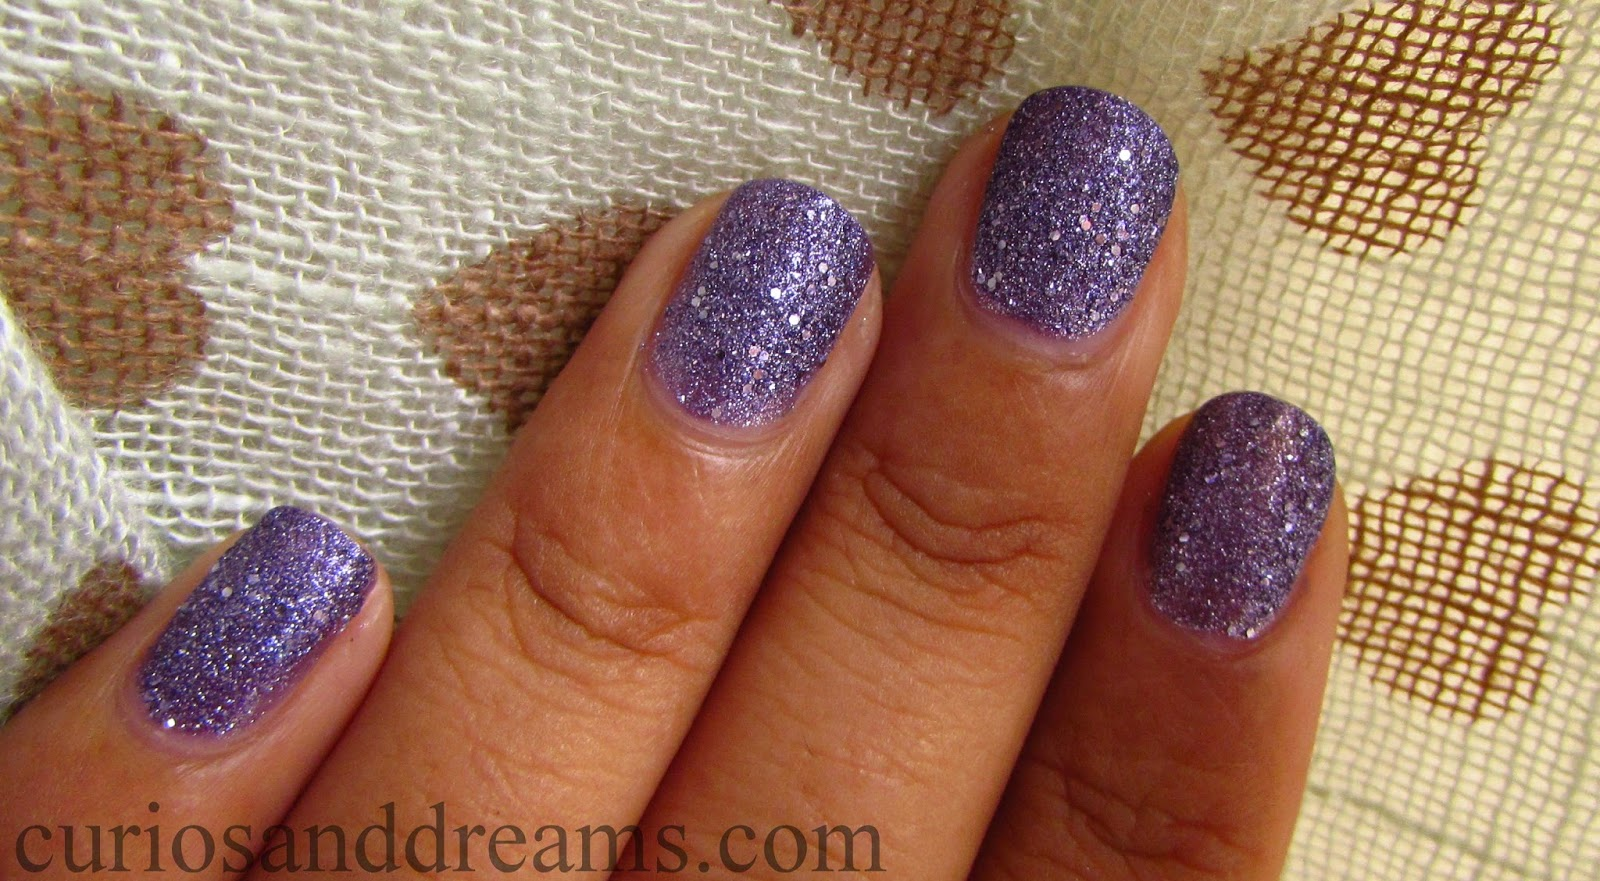 Maybelline Glitter Mania Paparazzi Purple review, Maybelline Glitter Mania Paparazzi Purple swatch